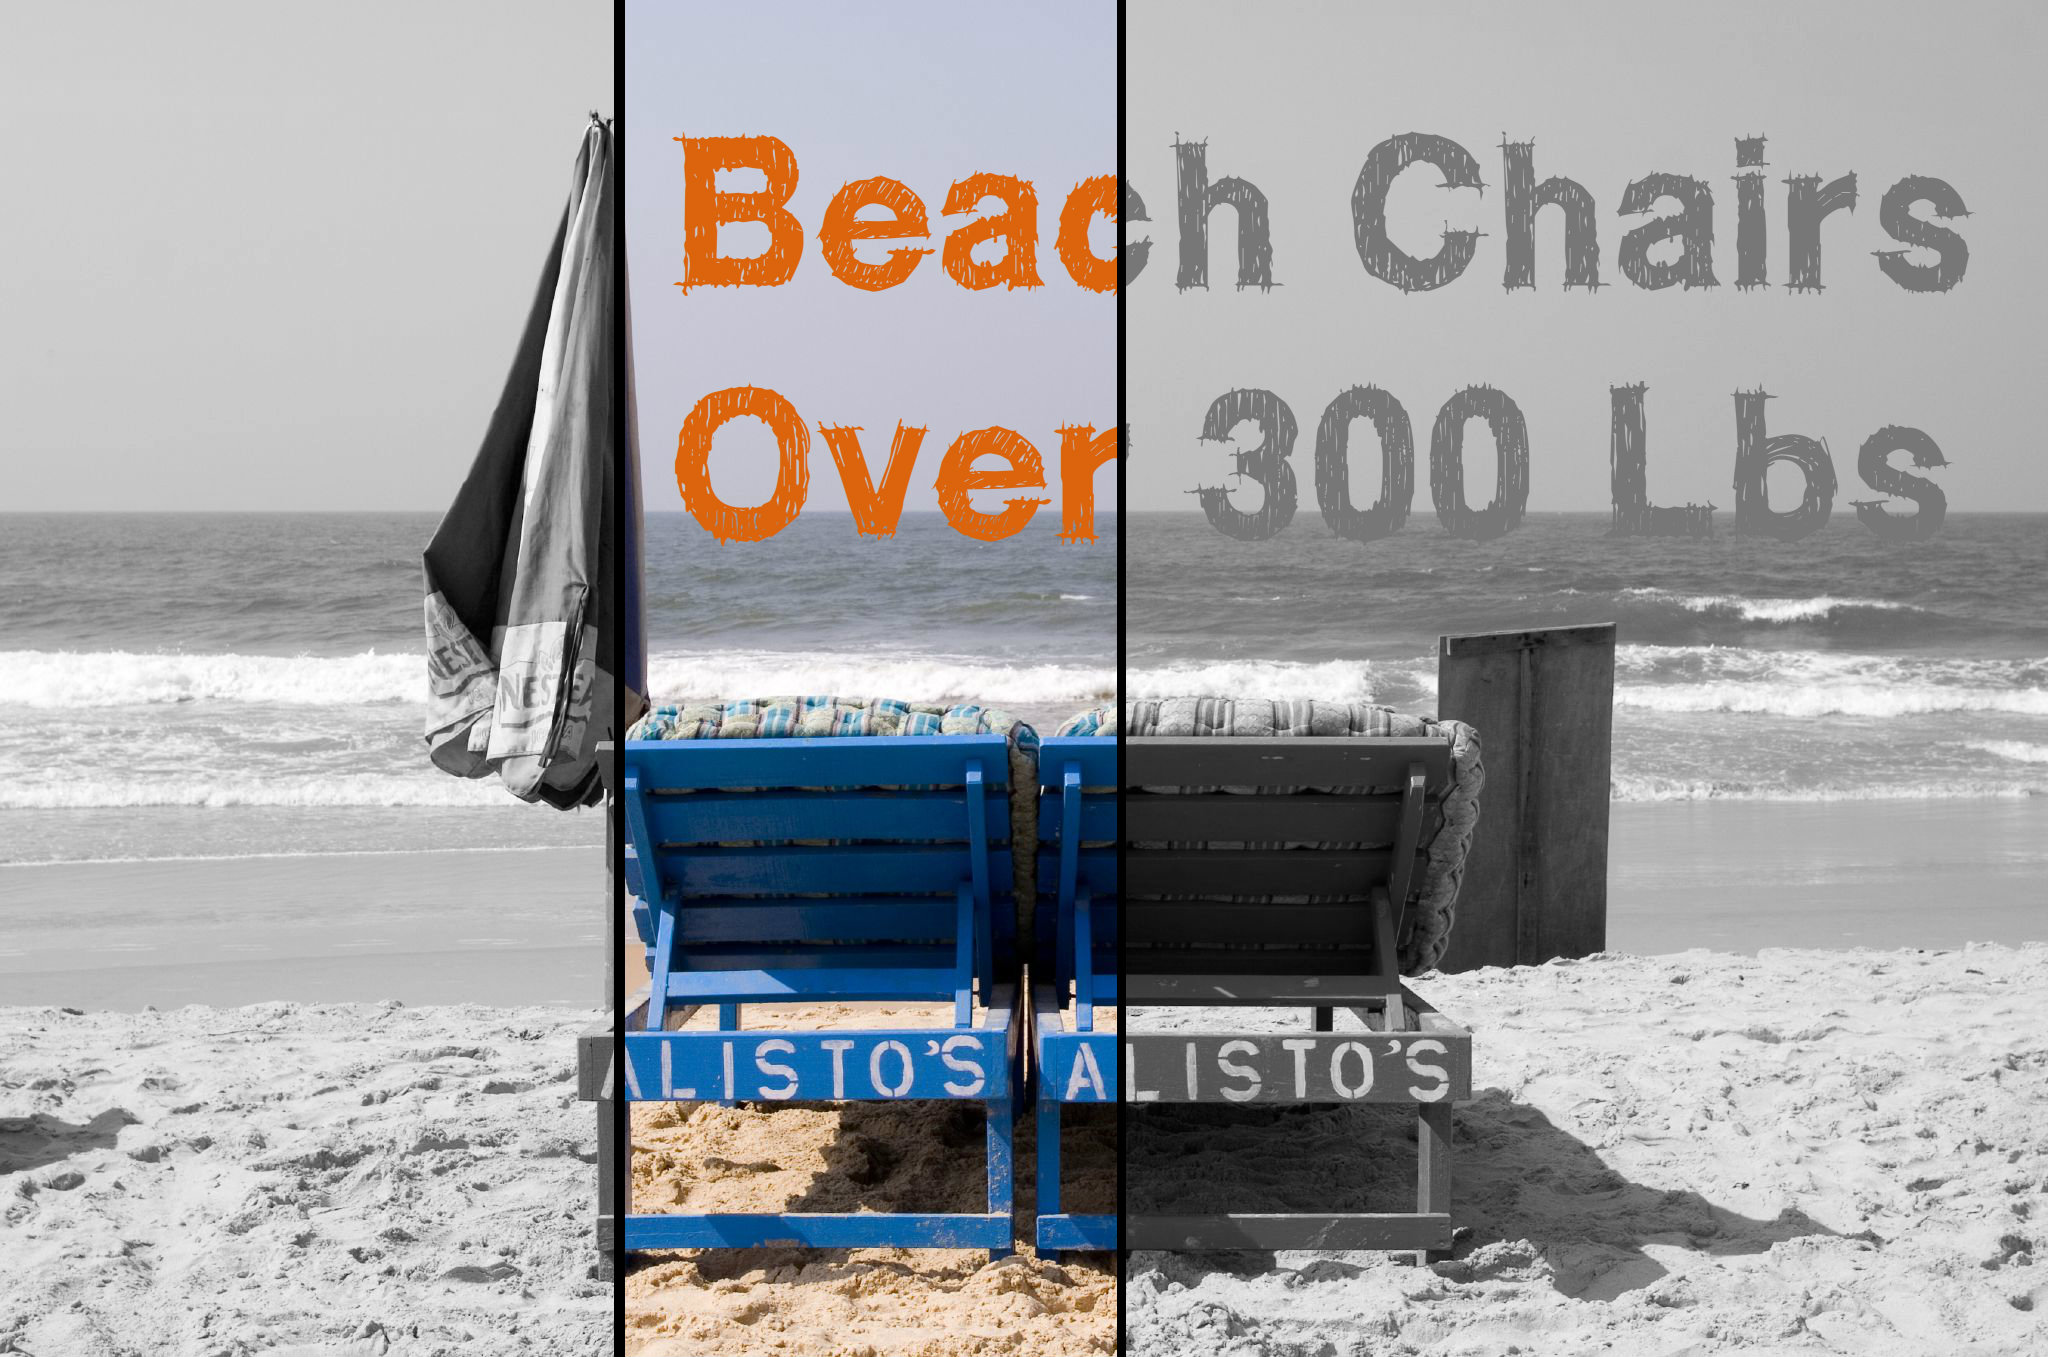 Plus Size Beach Chairs 300 Lbs Plus Size People For Big And Heavy .